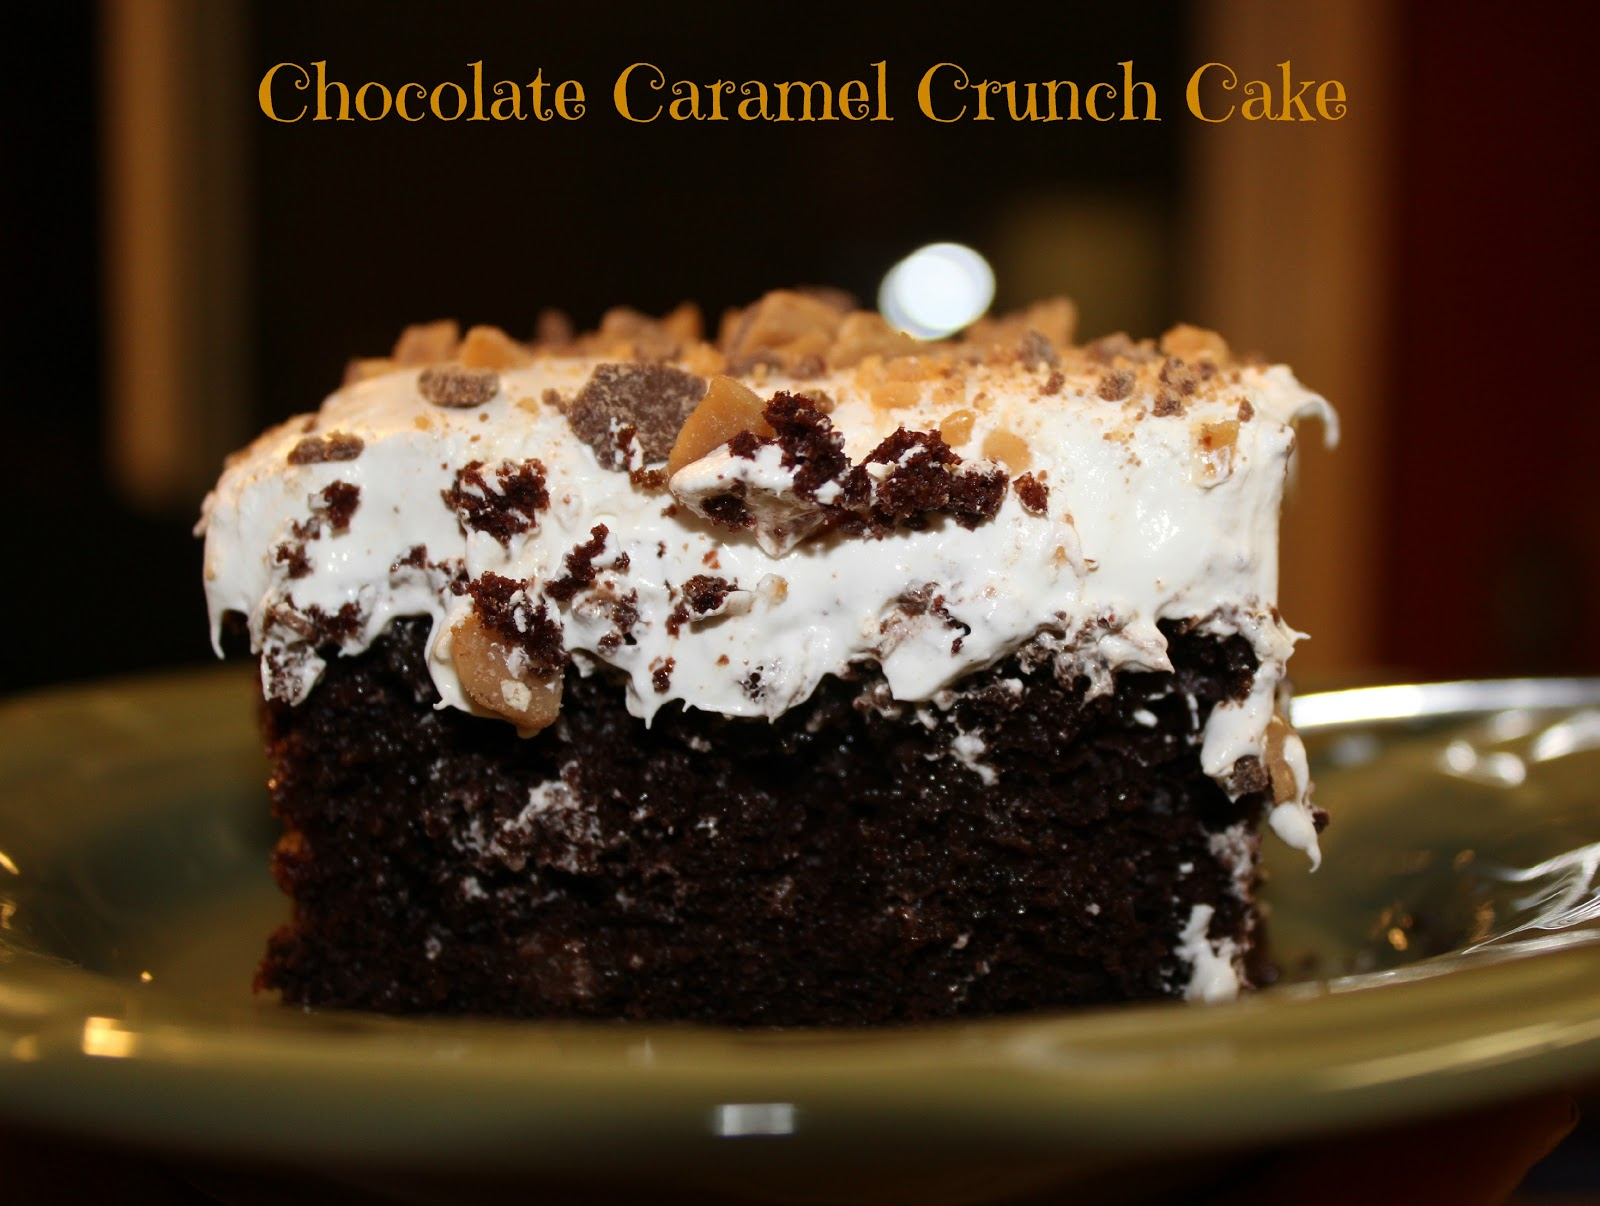 Michelle's Tasty Creations: Chocolate Caramel Crunch Cake